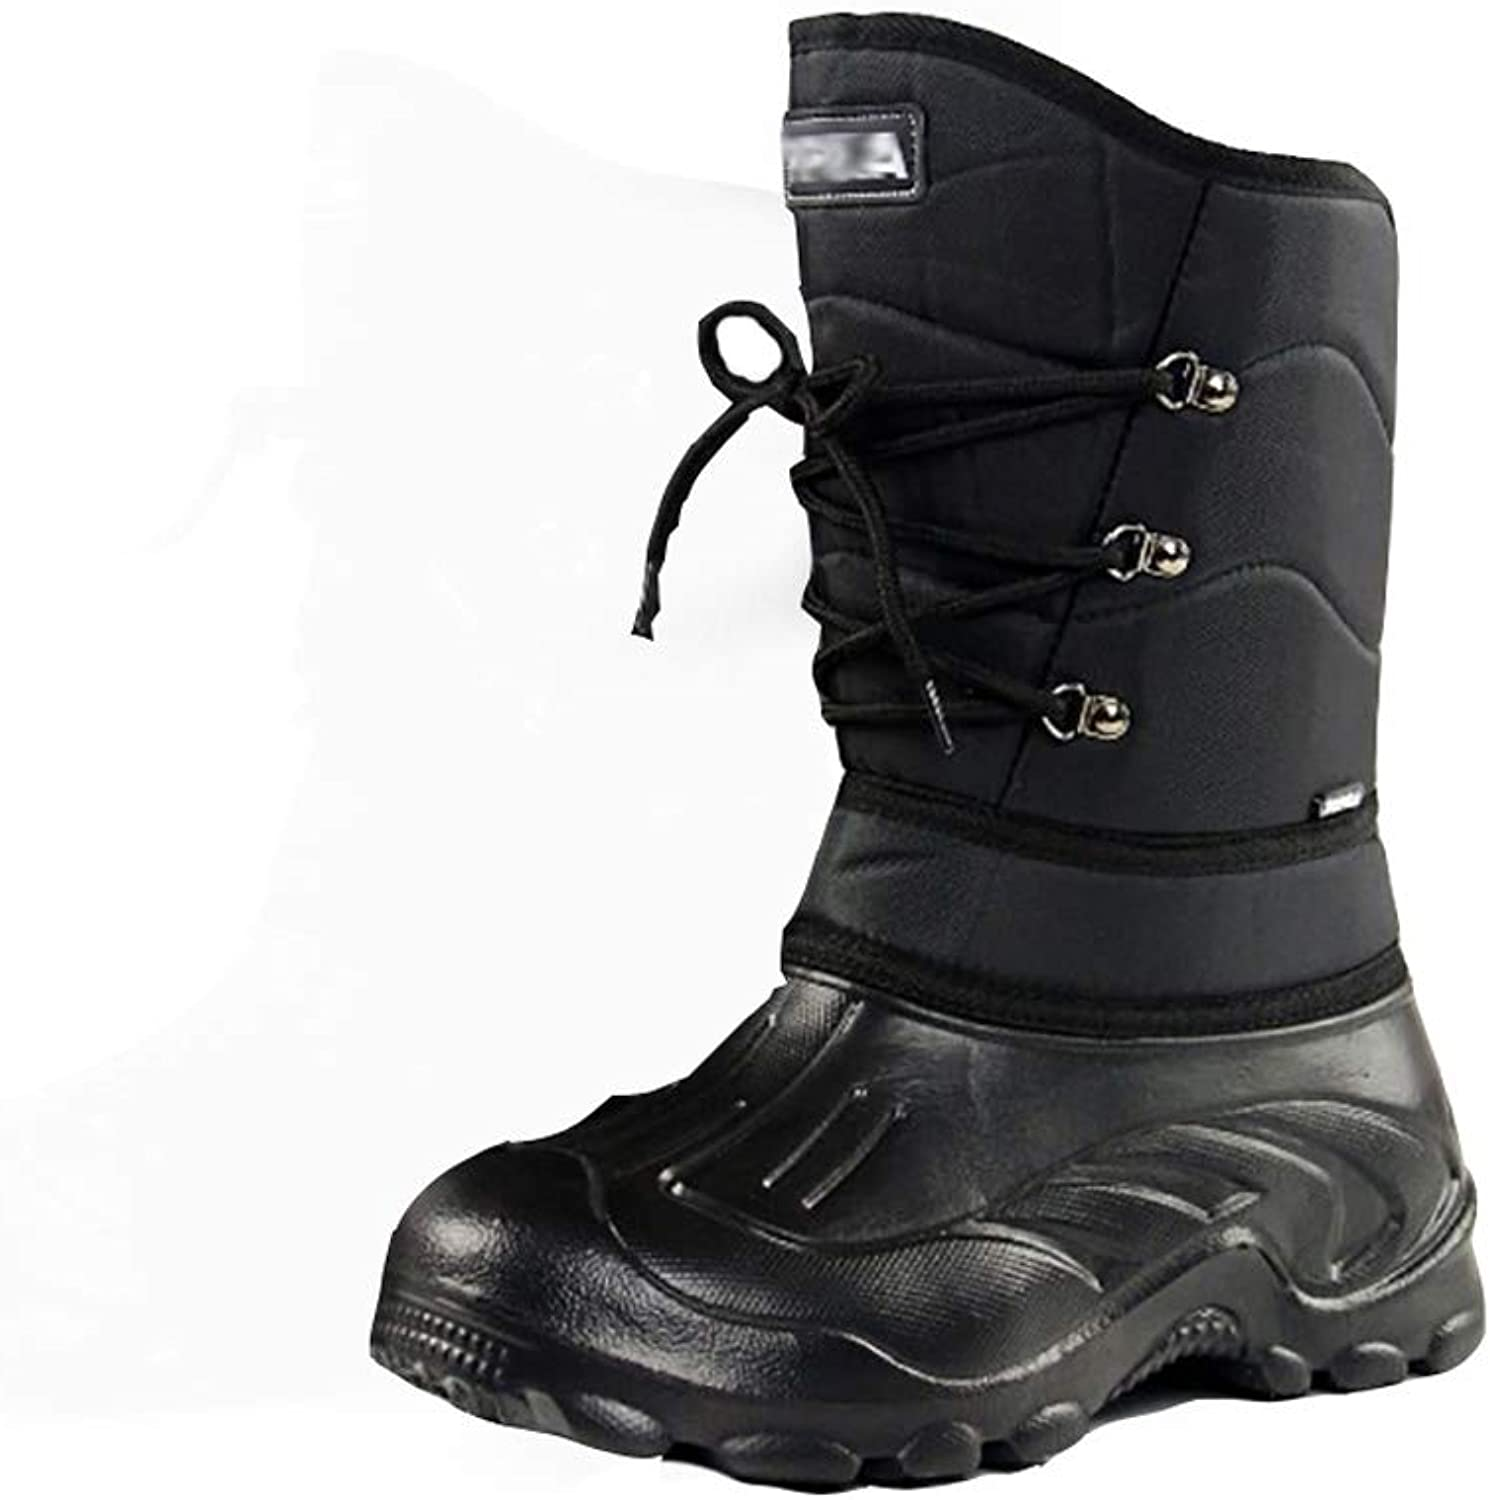 SMILINGGIRL Men's Snow Boots in The Tube - Outdoor Skiing Warm and Comfortable, Waterproof Winter Fishing shoes